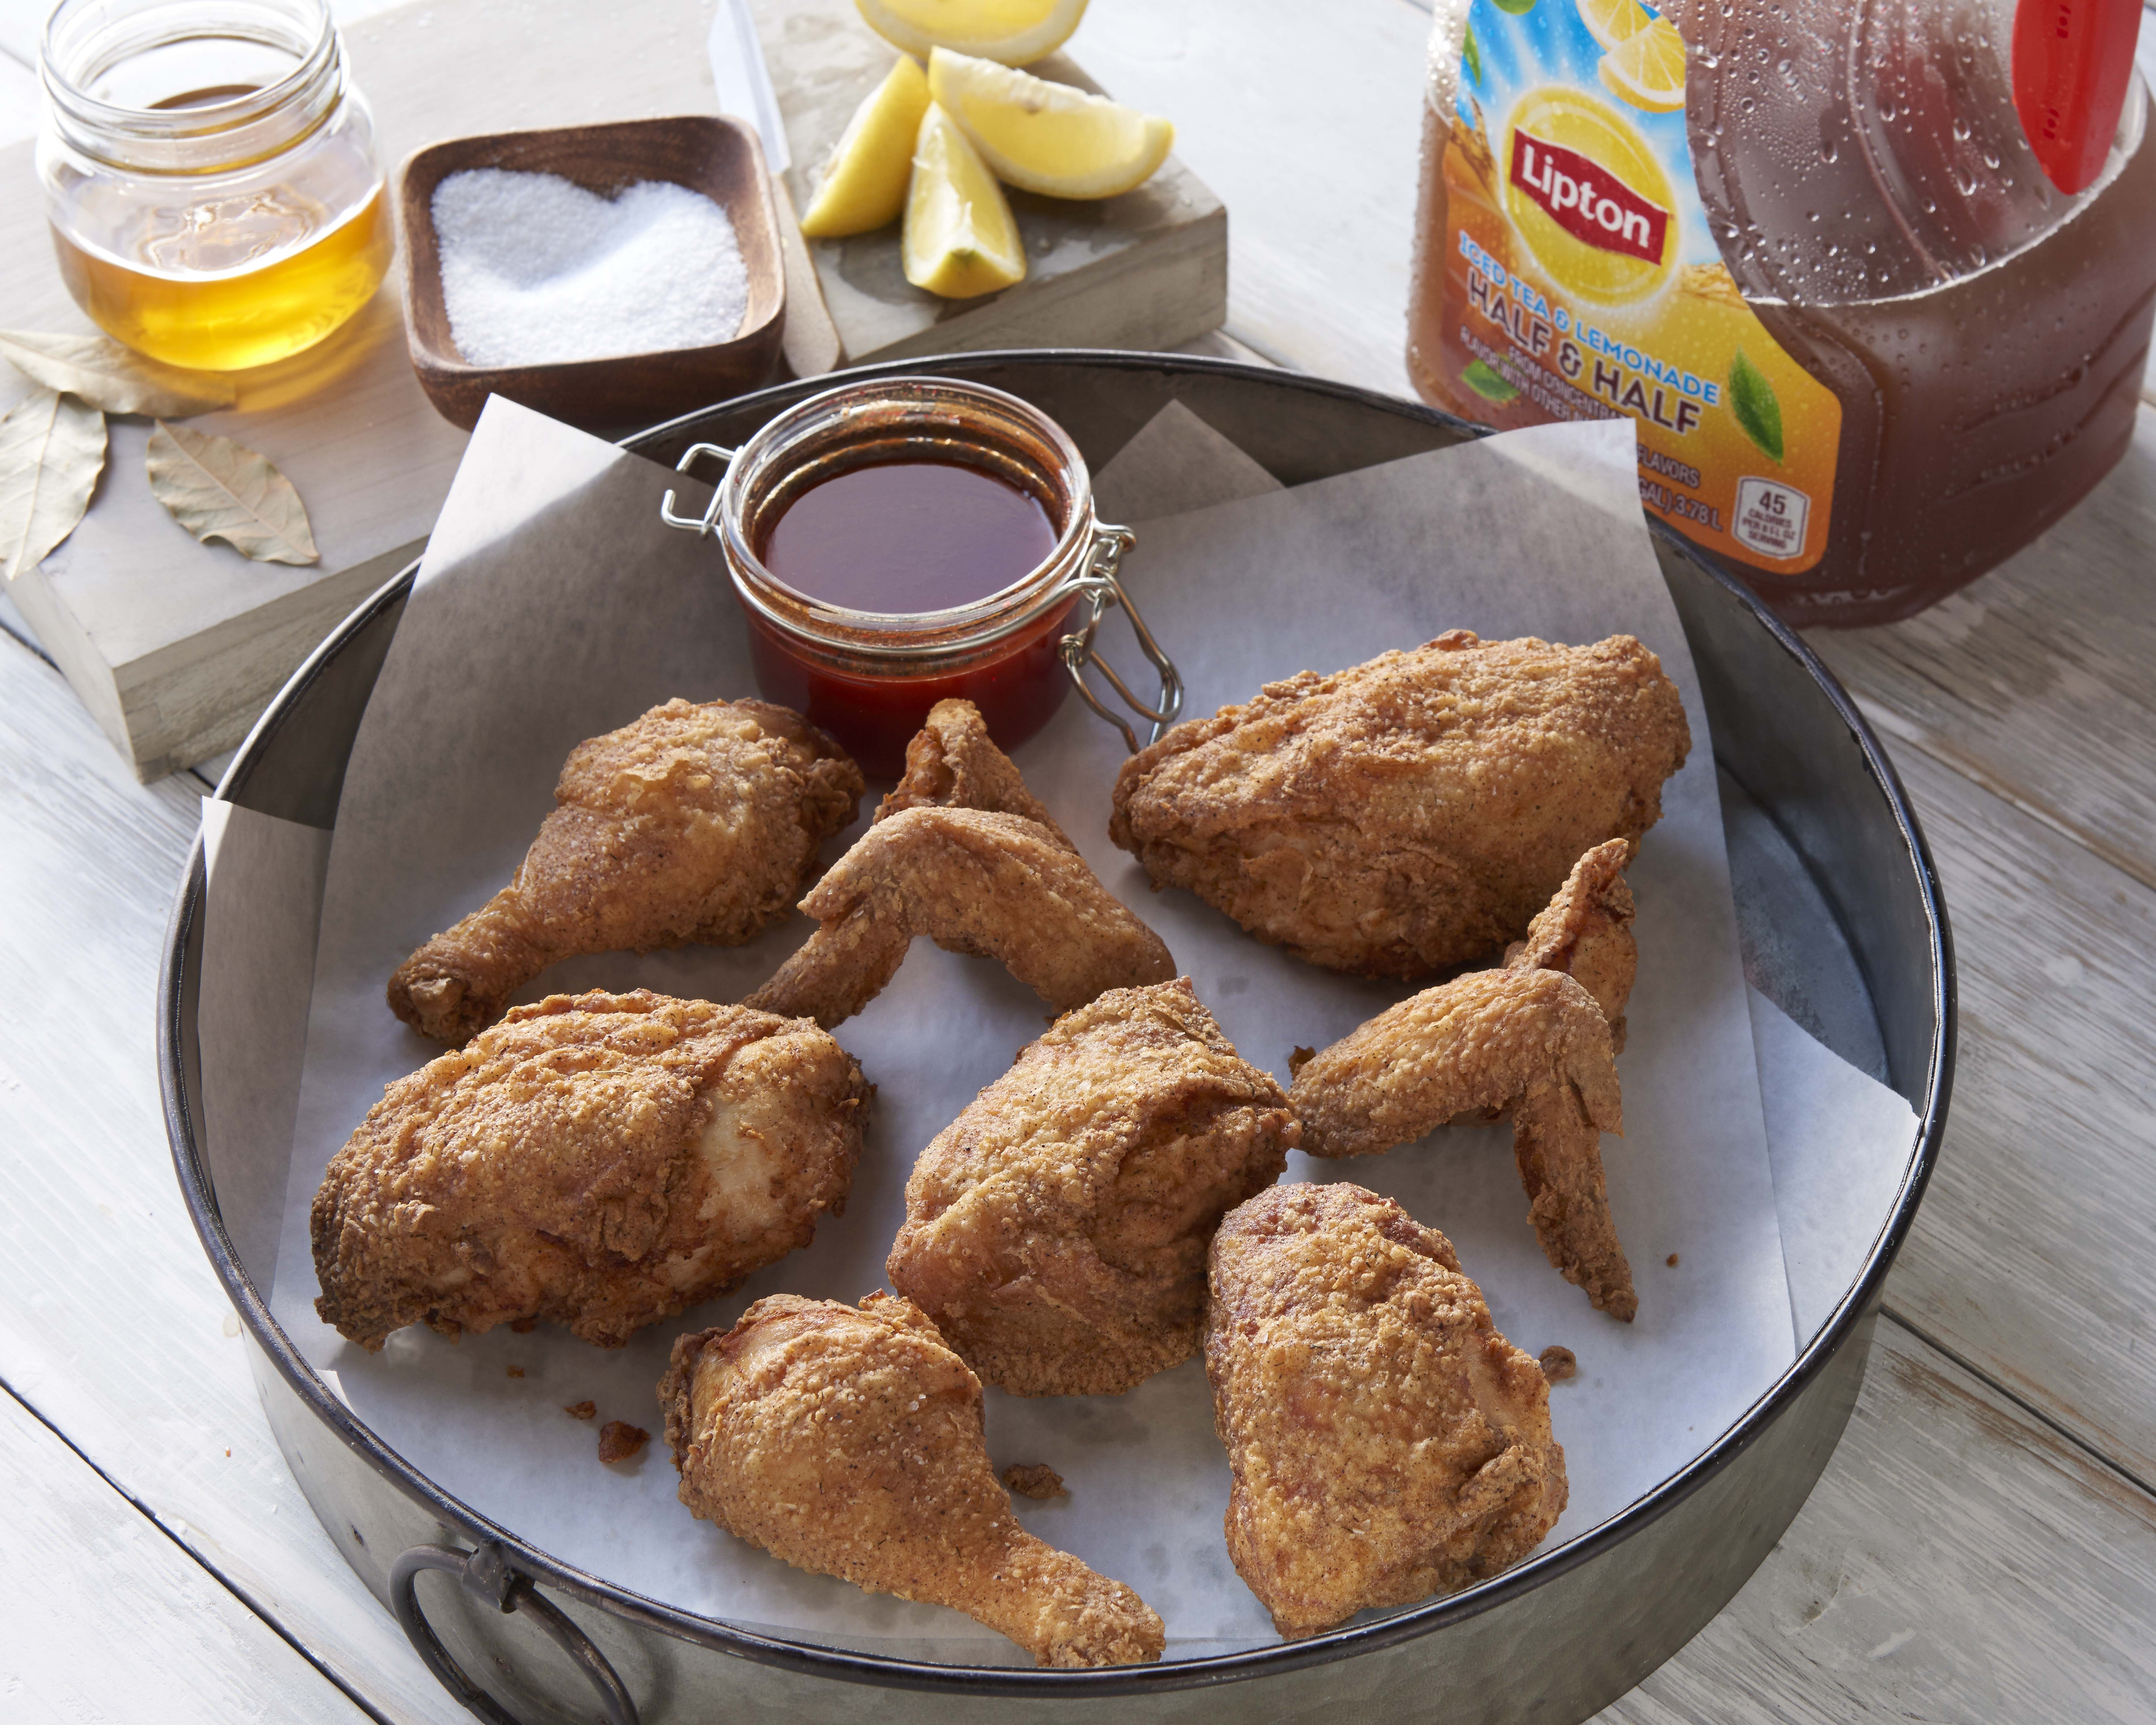 Chef Michael Symon's Twice-Fried Chicken with Spicy Honey